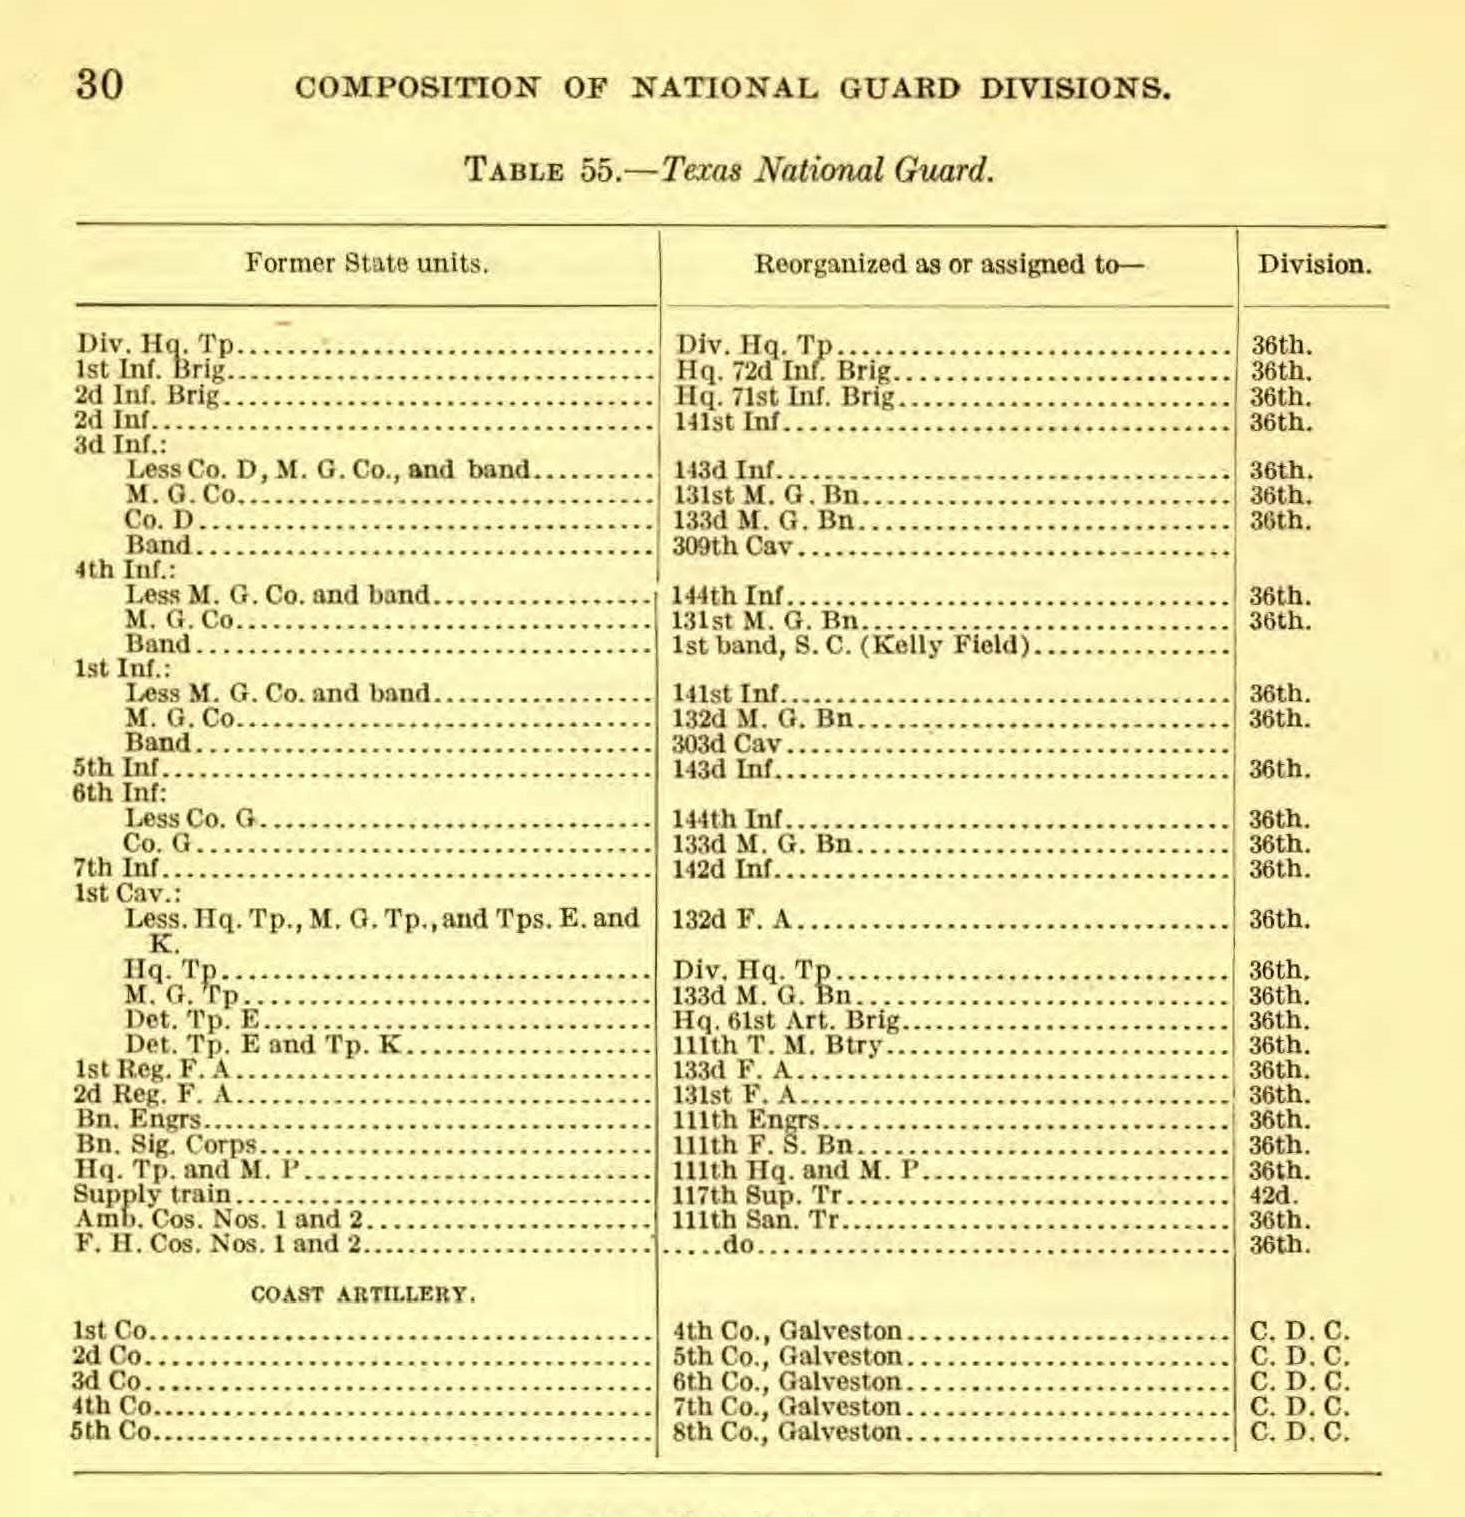 Pages from 30-31 - CompositionFormerNatlGuardUnits.1916